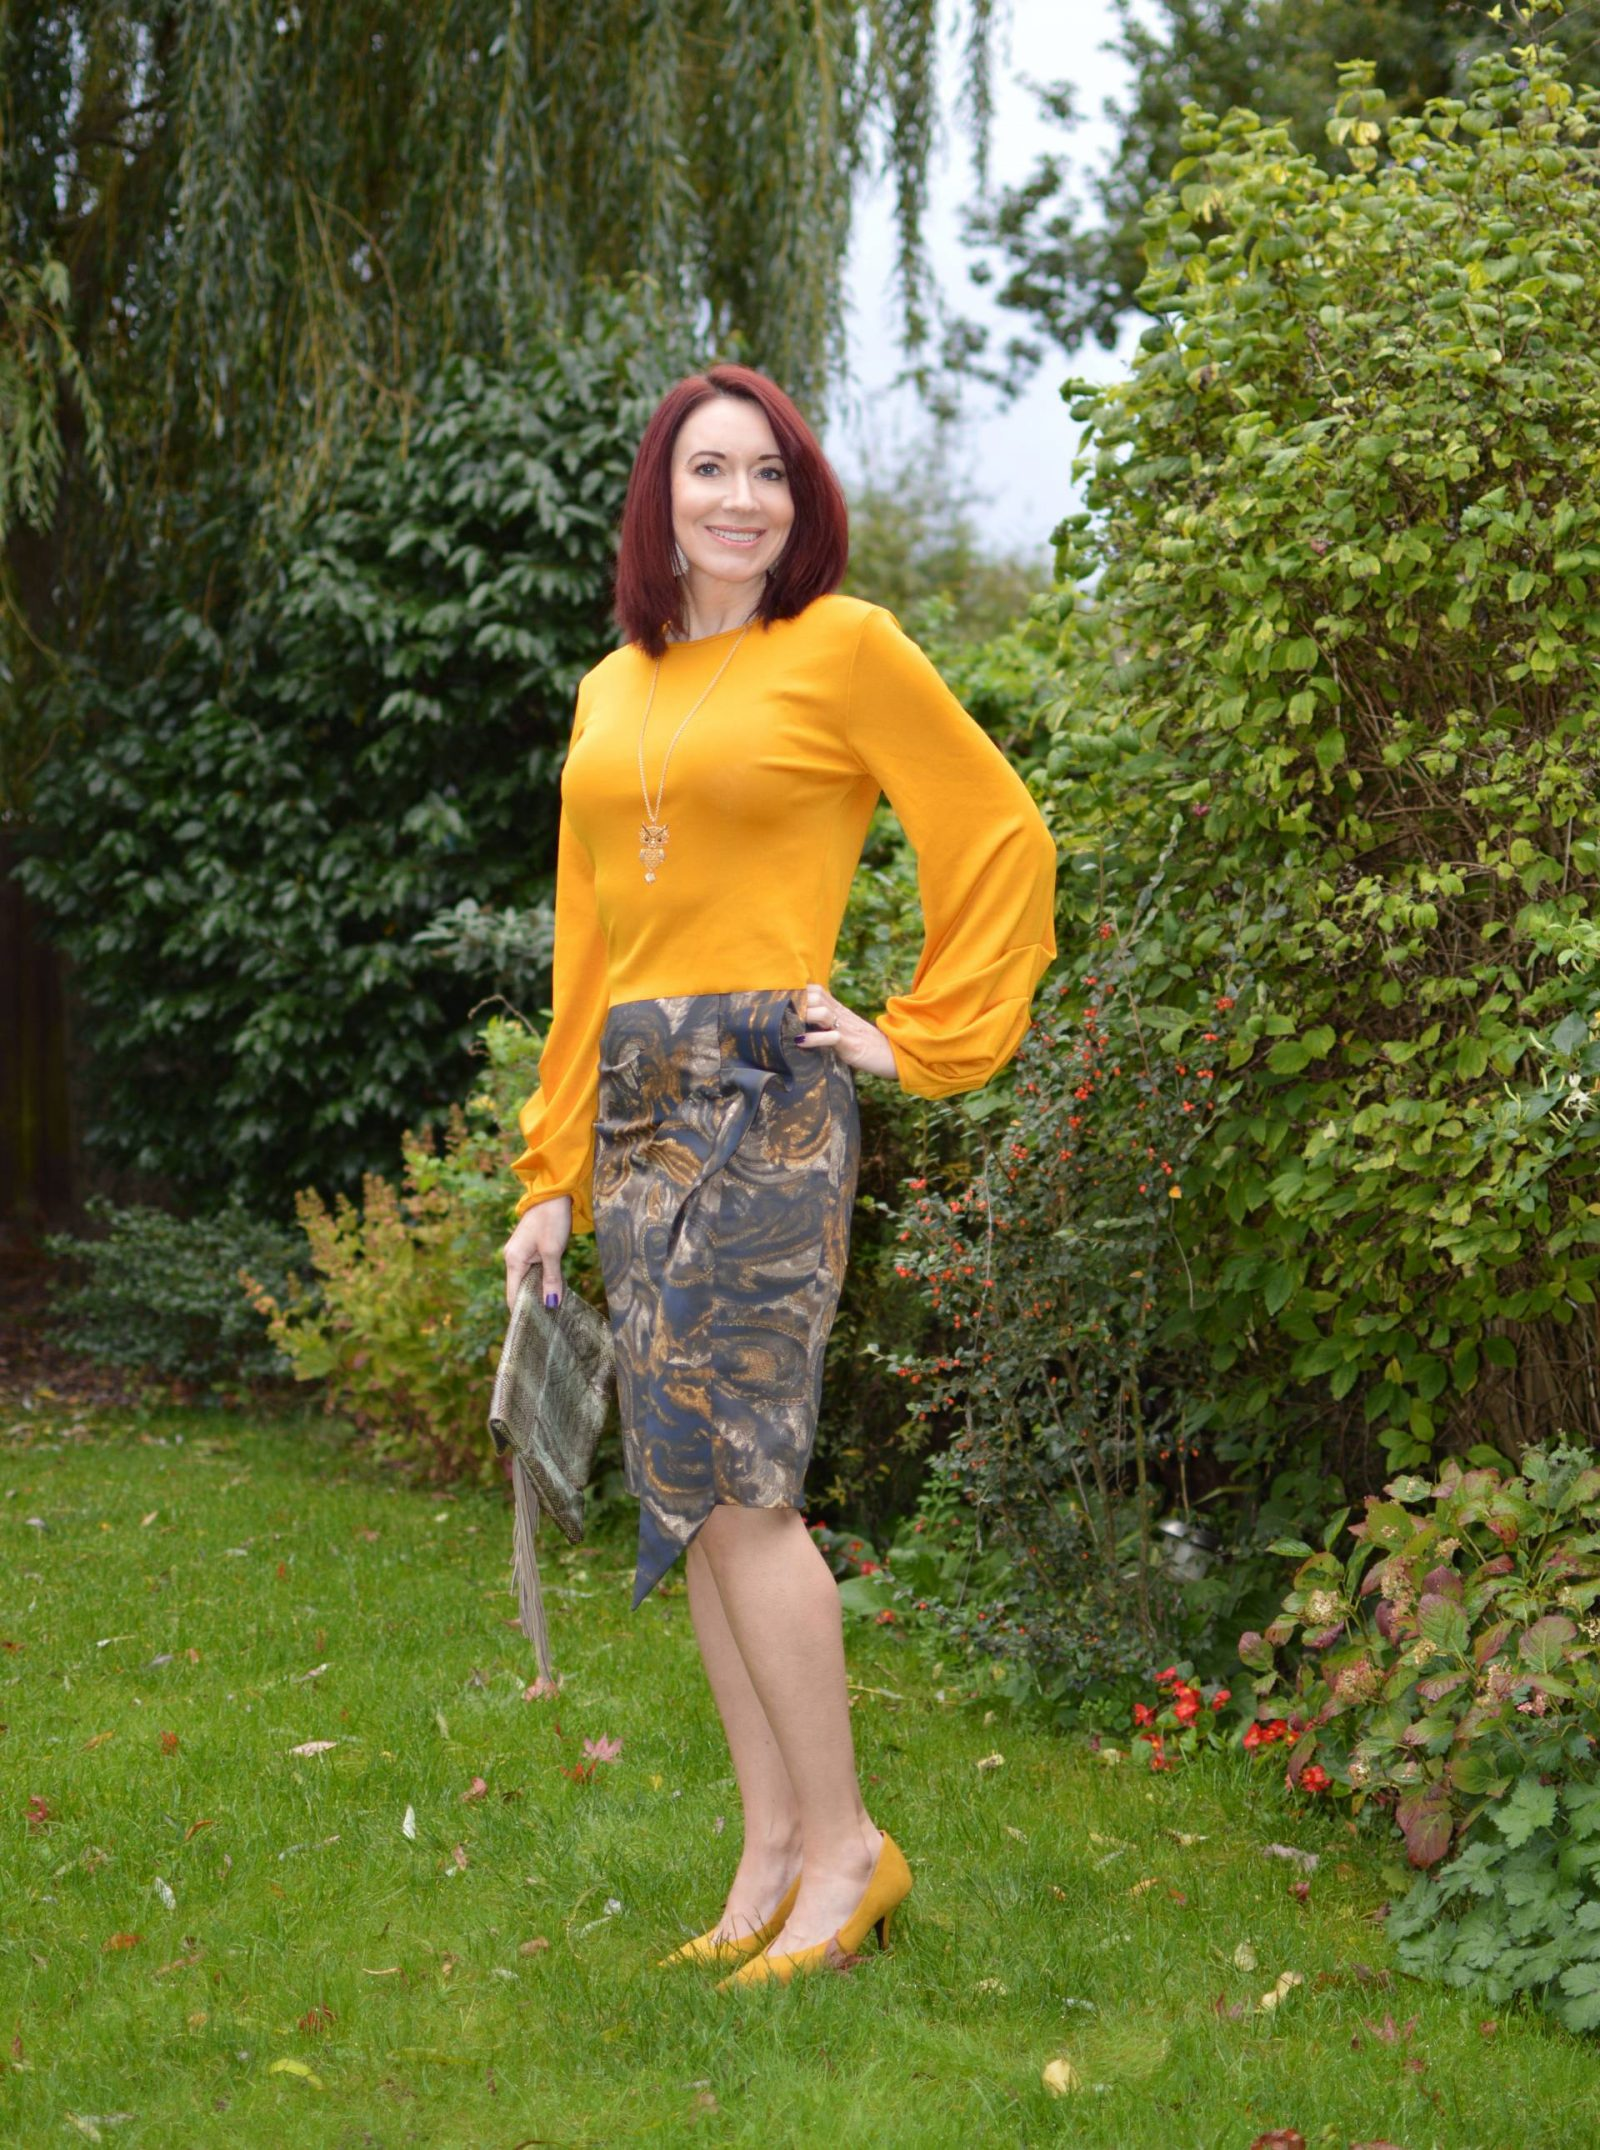 Karen Millen Frill skirt and mustard top